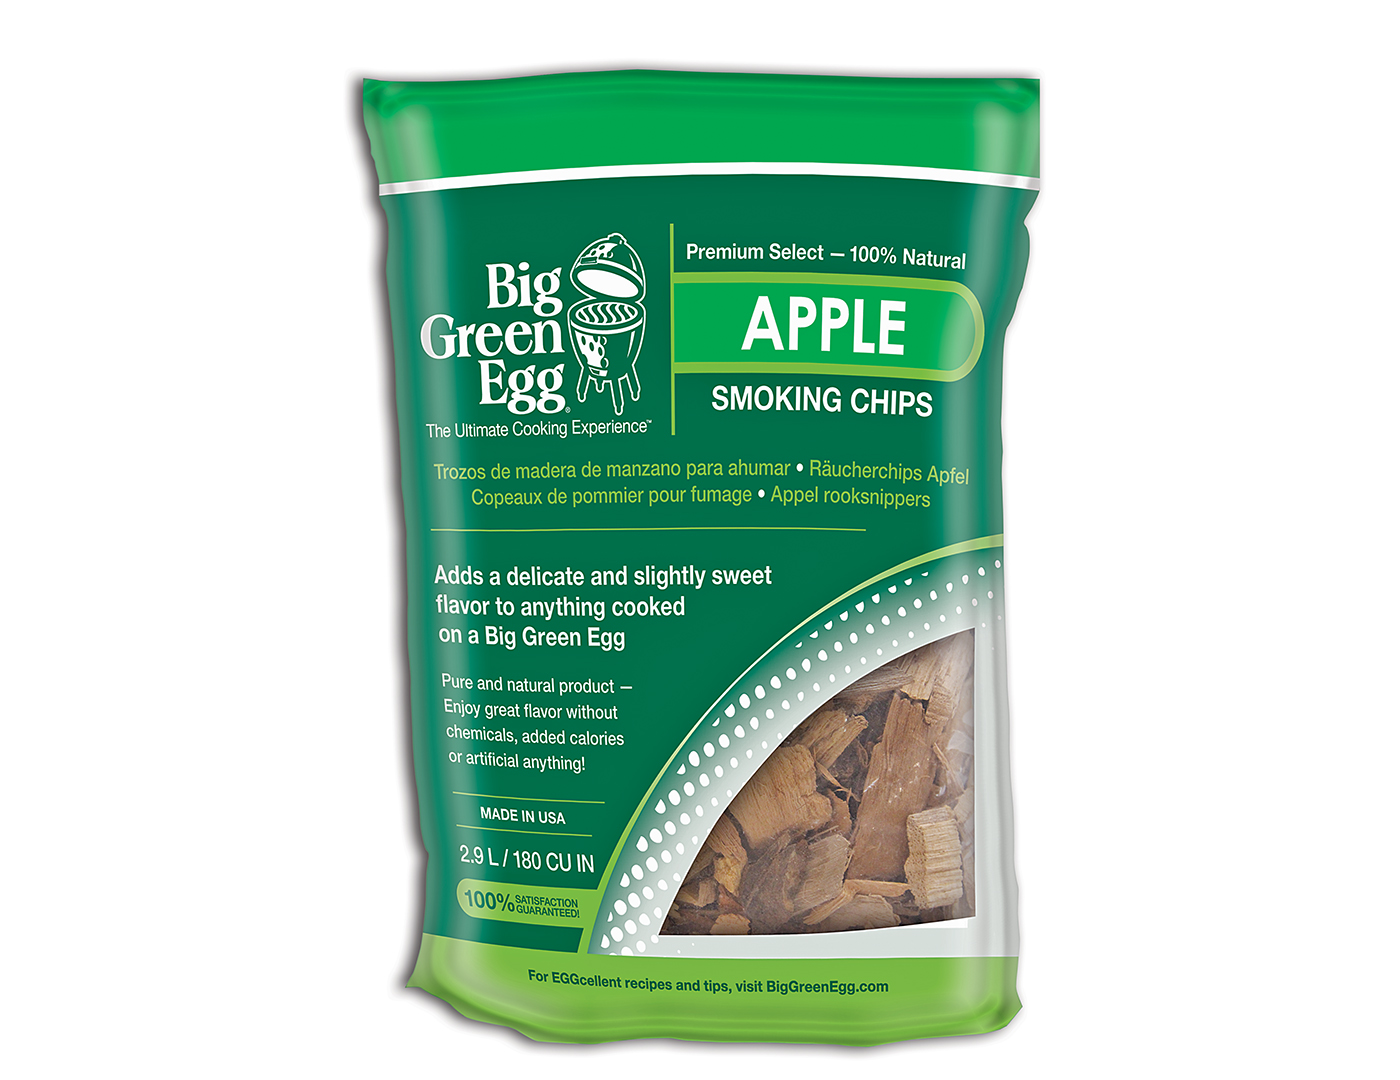 Big Green Egg Apple Smoking Chips